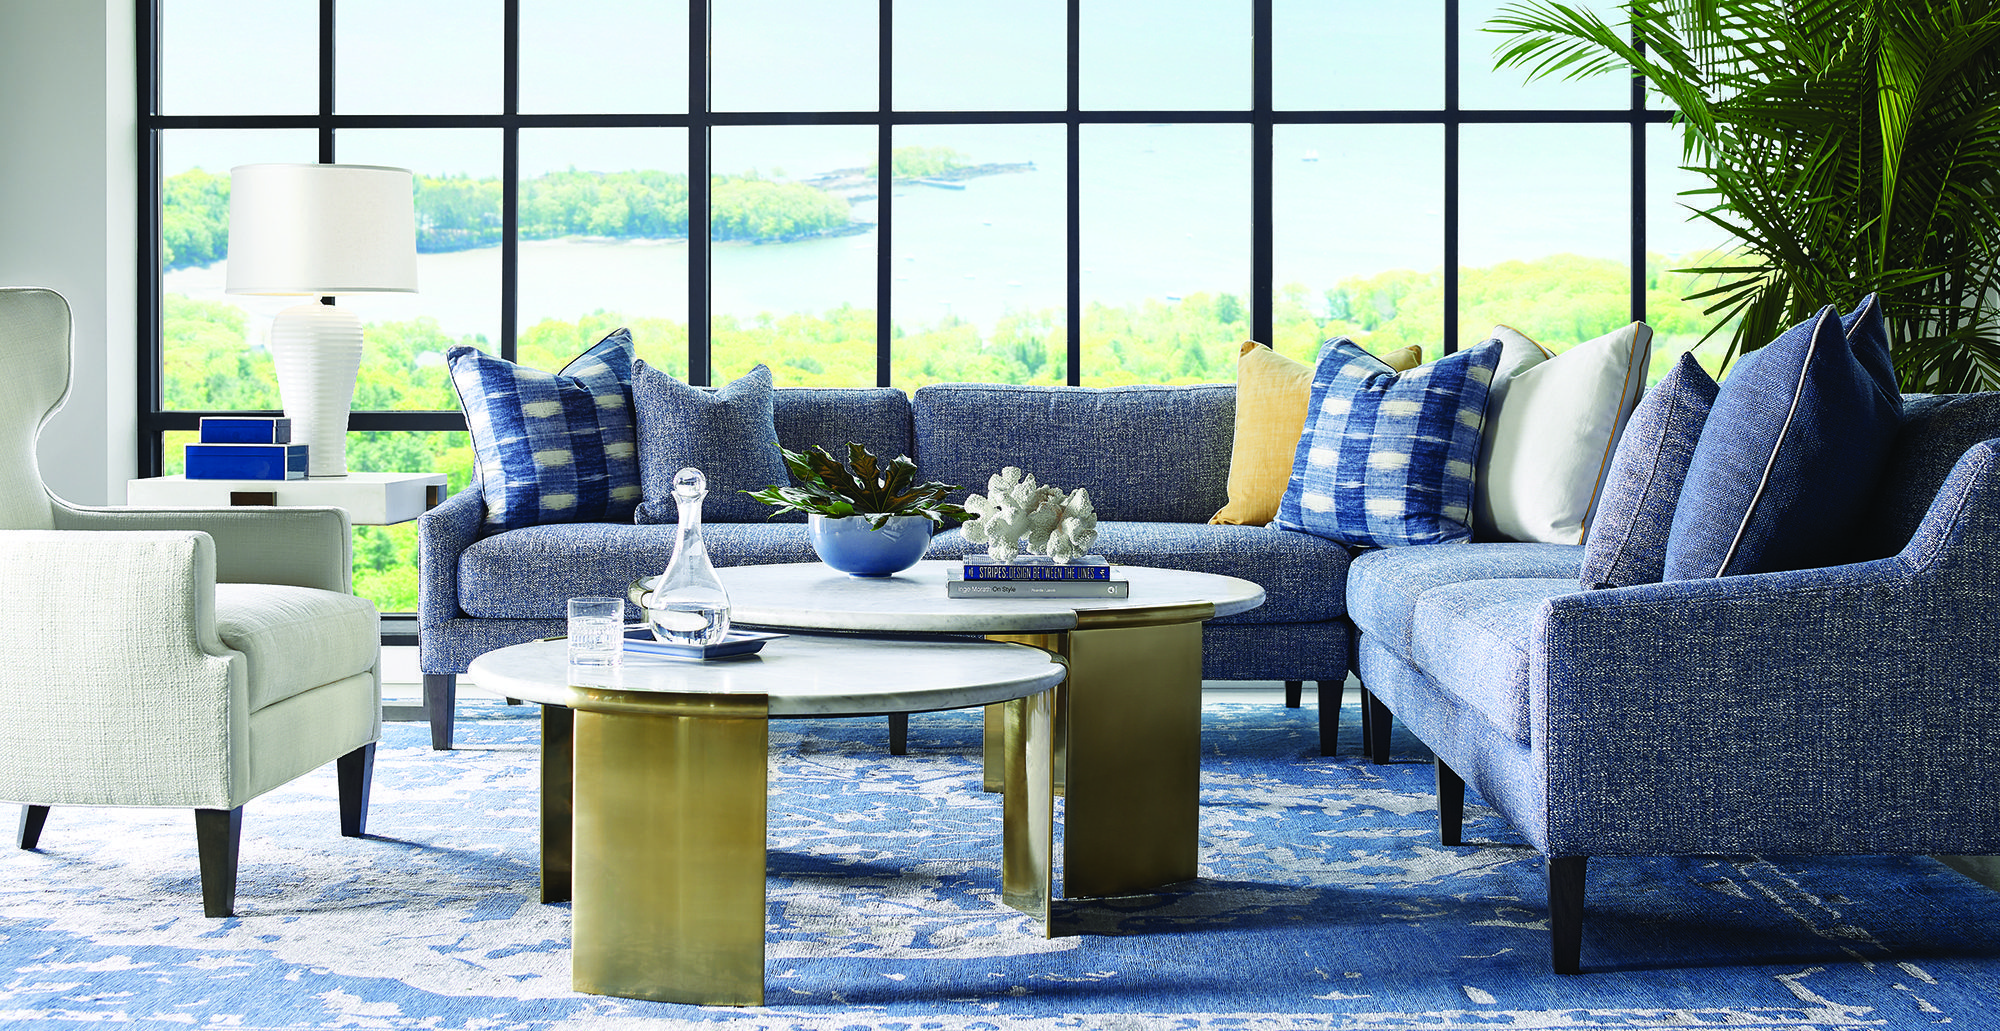 lillian august for hickory white, lillian august furniture